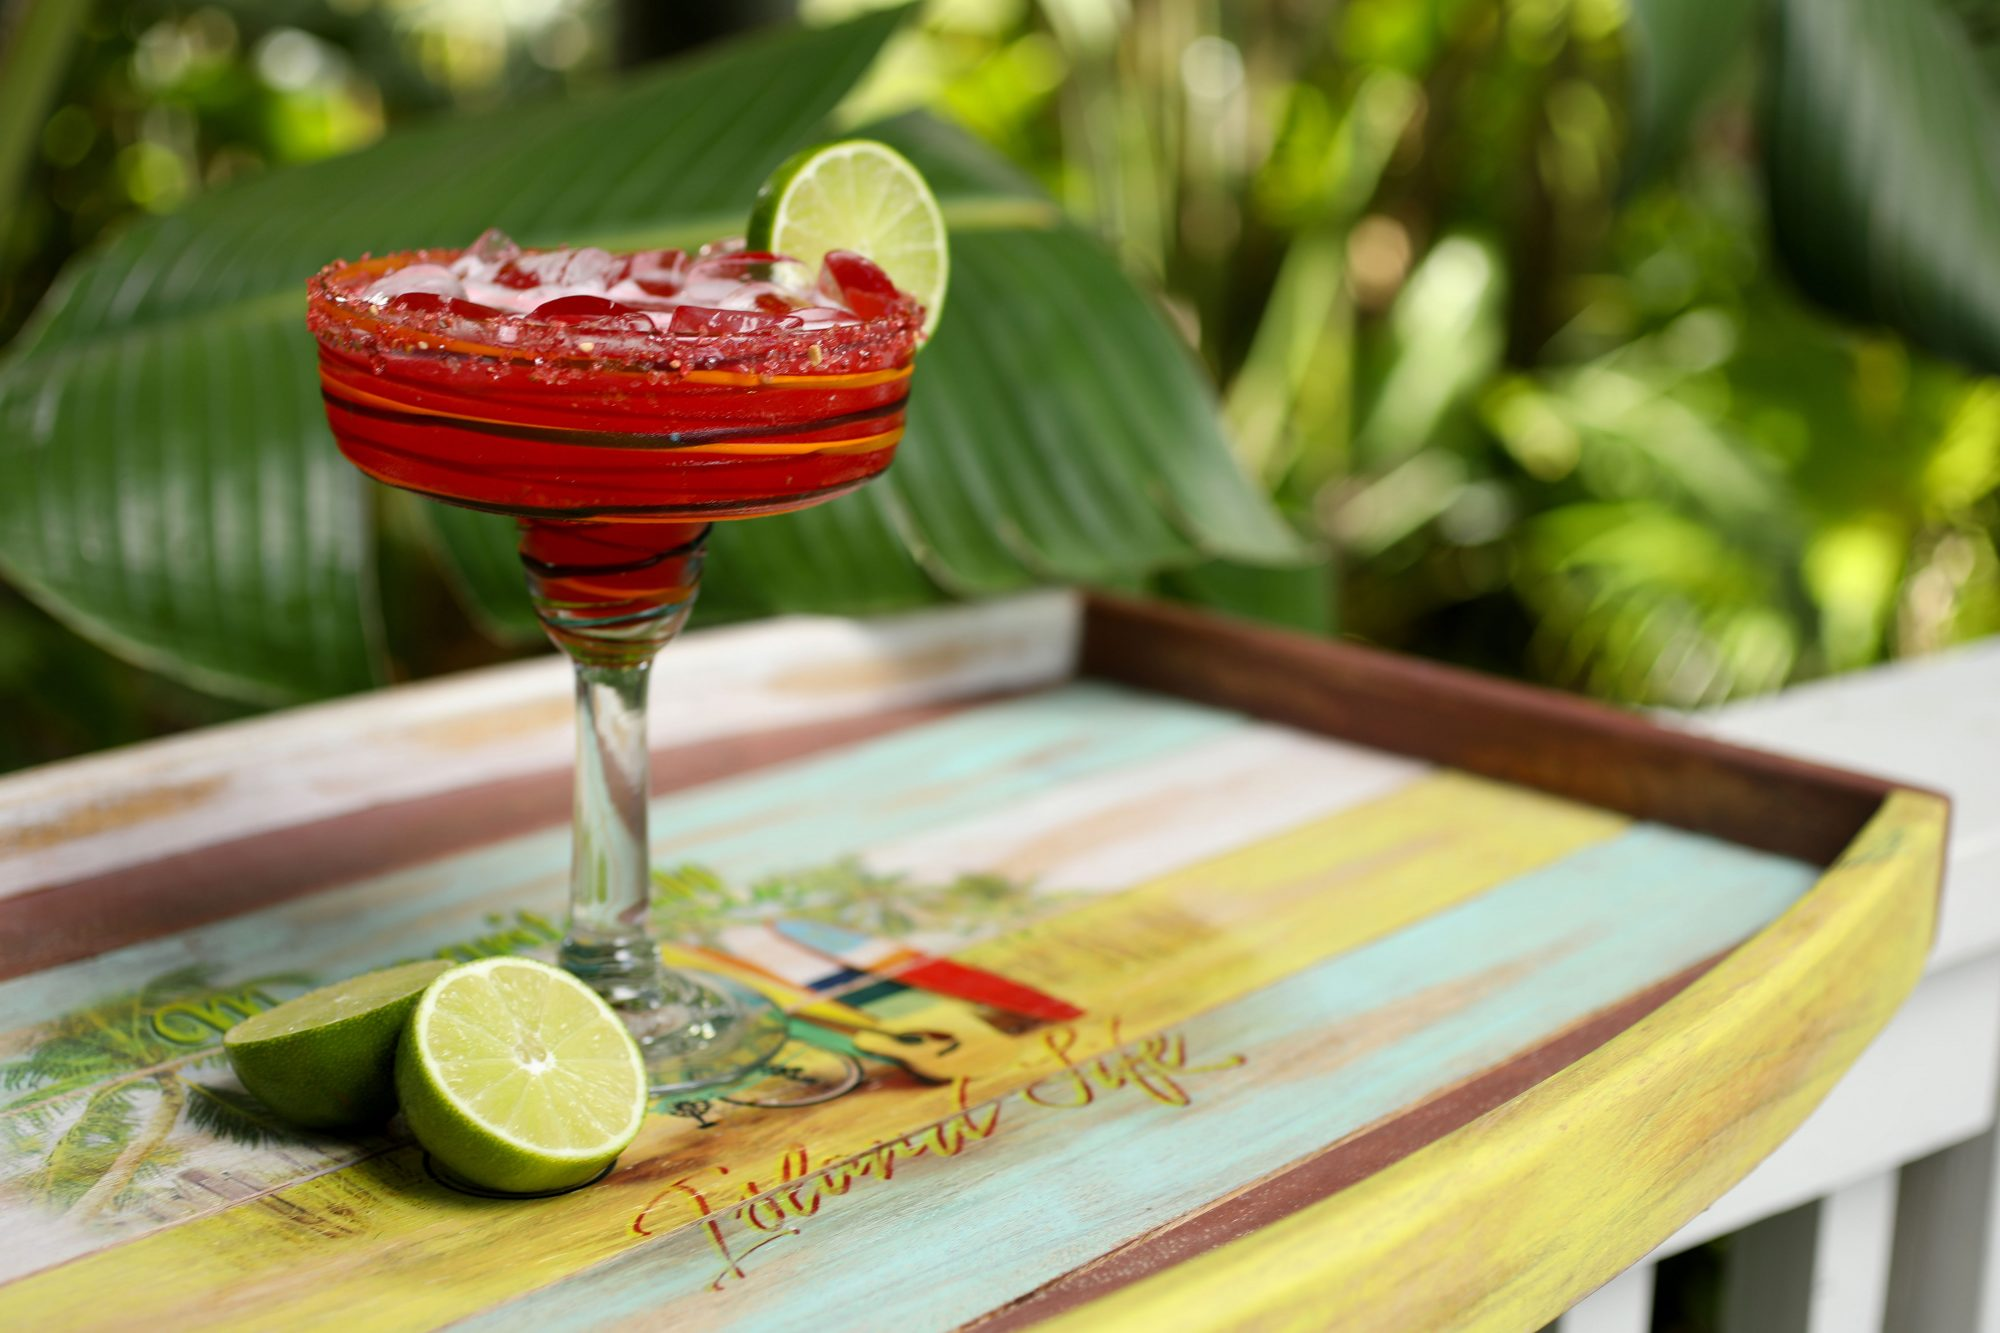 The deluxe Ruby Margarita is available exclusively at JWB Prime Steak and Seafood at Margaritaville Hollywood Beach Resort in South Florida for a whopping $1,977—and no, it doesn't come with actual rubies.